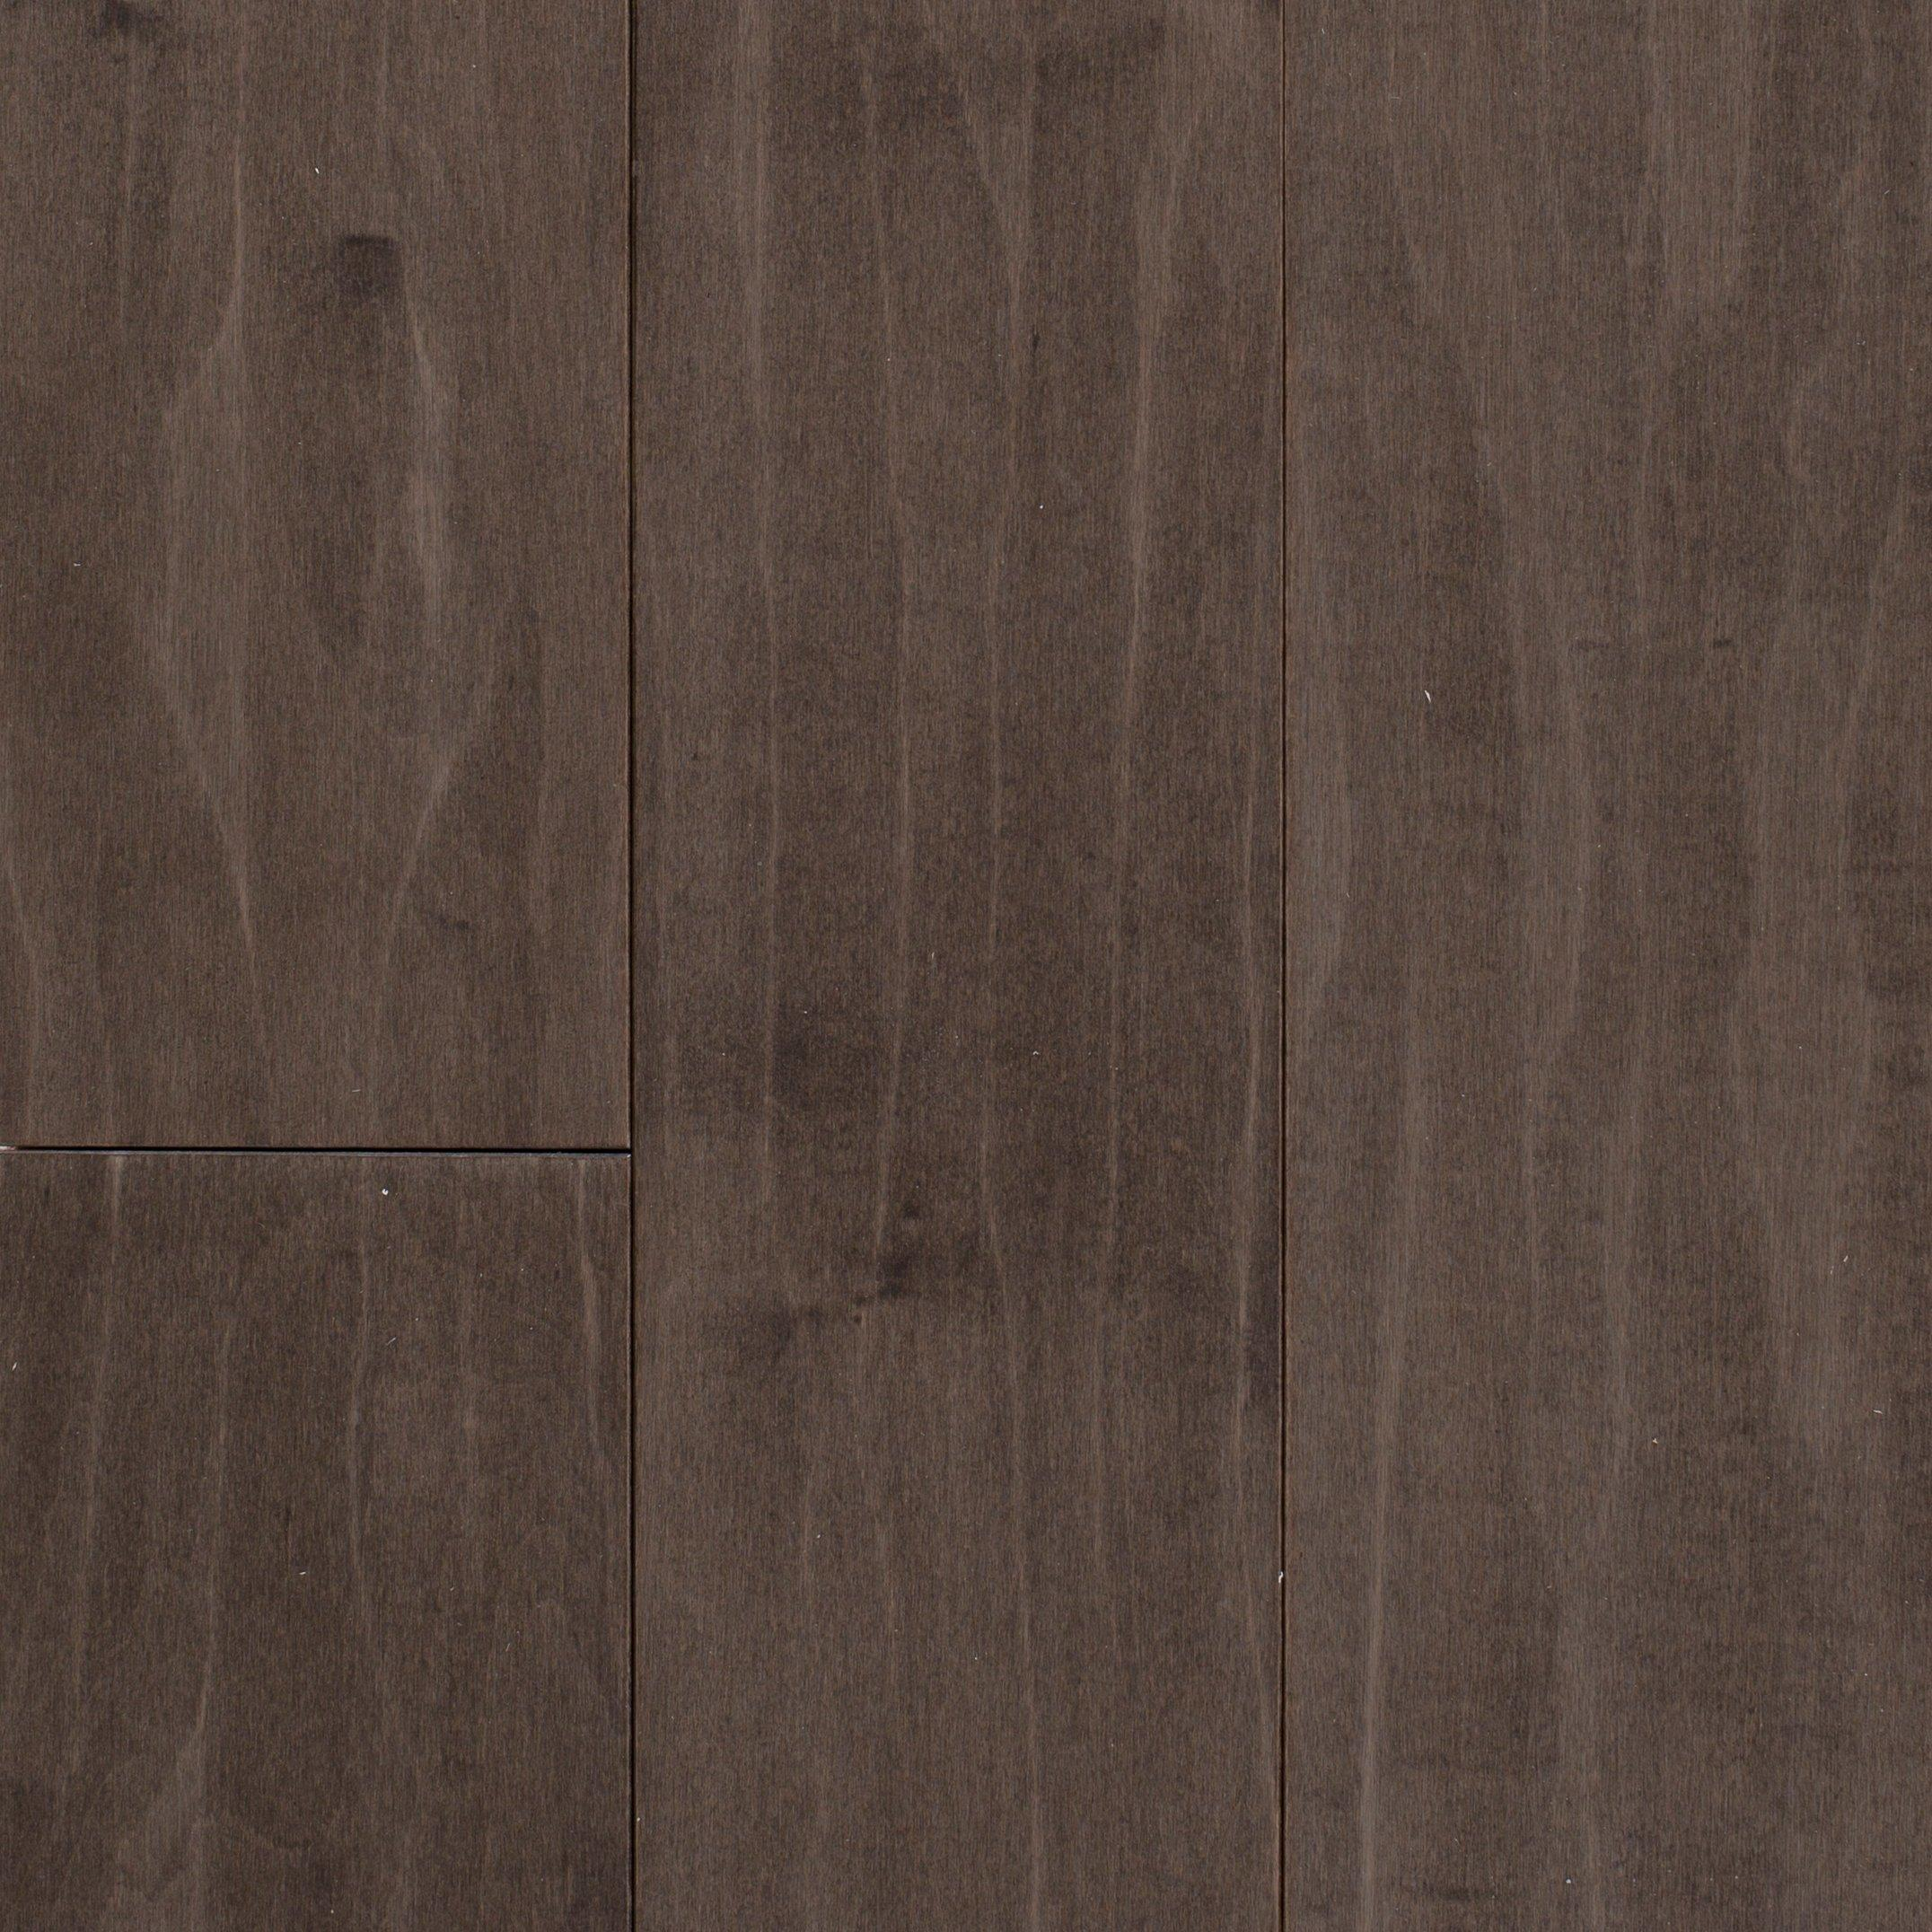 Hand scraped wood tile - Tyene Sand Maple Hand Scraped Engineered Hardwood 1 2in X 5 3 16in 100262427 Floor And Decor